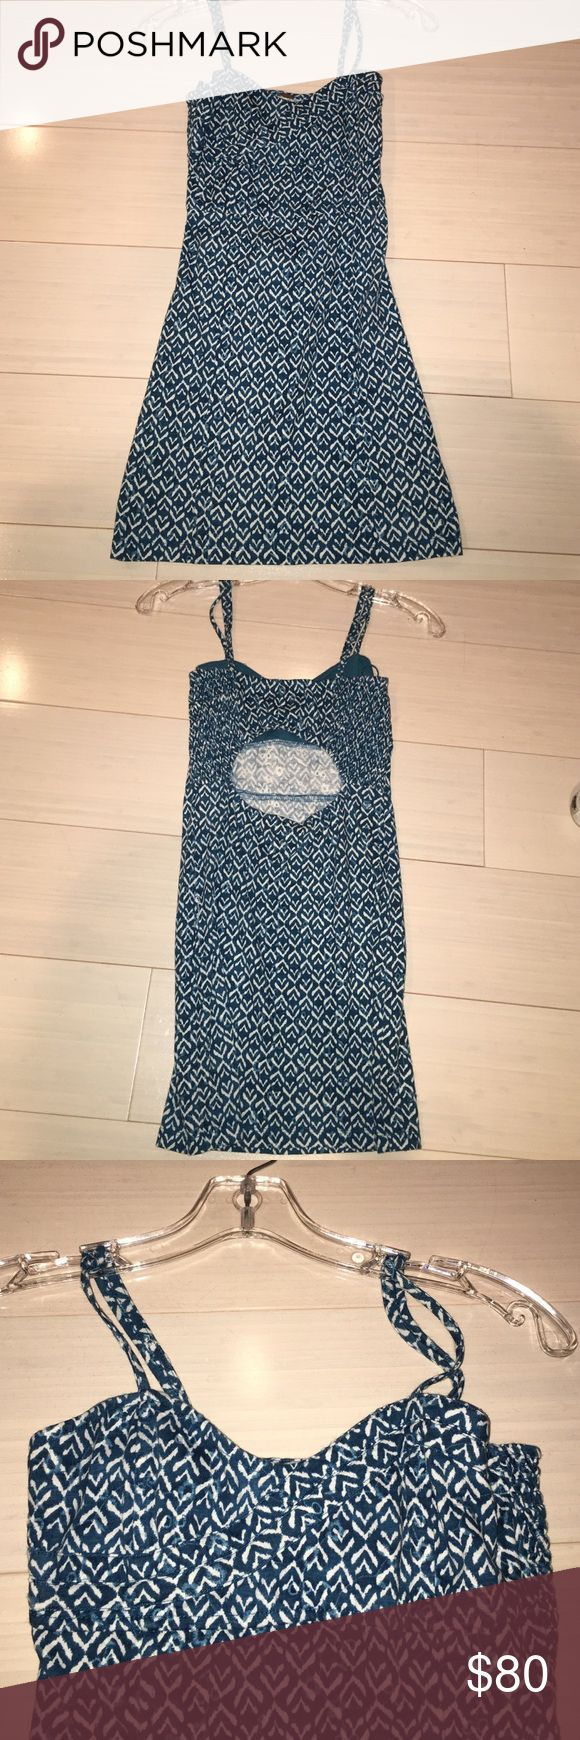 """Turquoise and white patterned bodycon dress Free people turquoise and white bodycon dress. """"O shaped"""" cutout in the back. Elastic on the sides. Tank top straps and very short Free People Dresses Mini"""